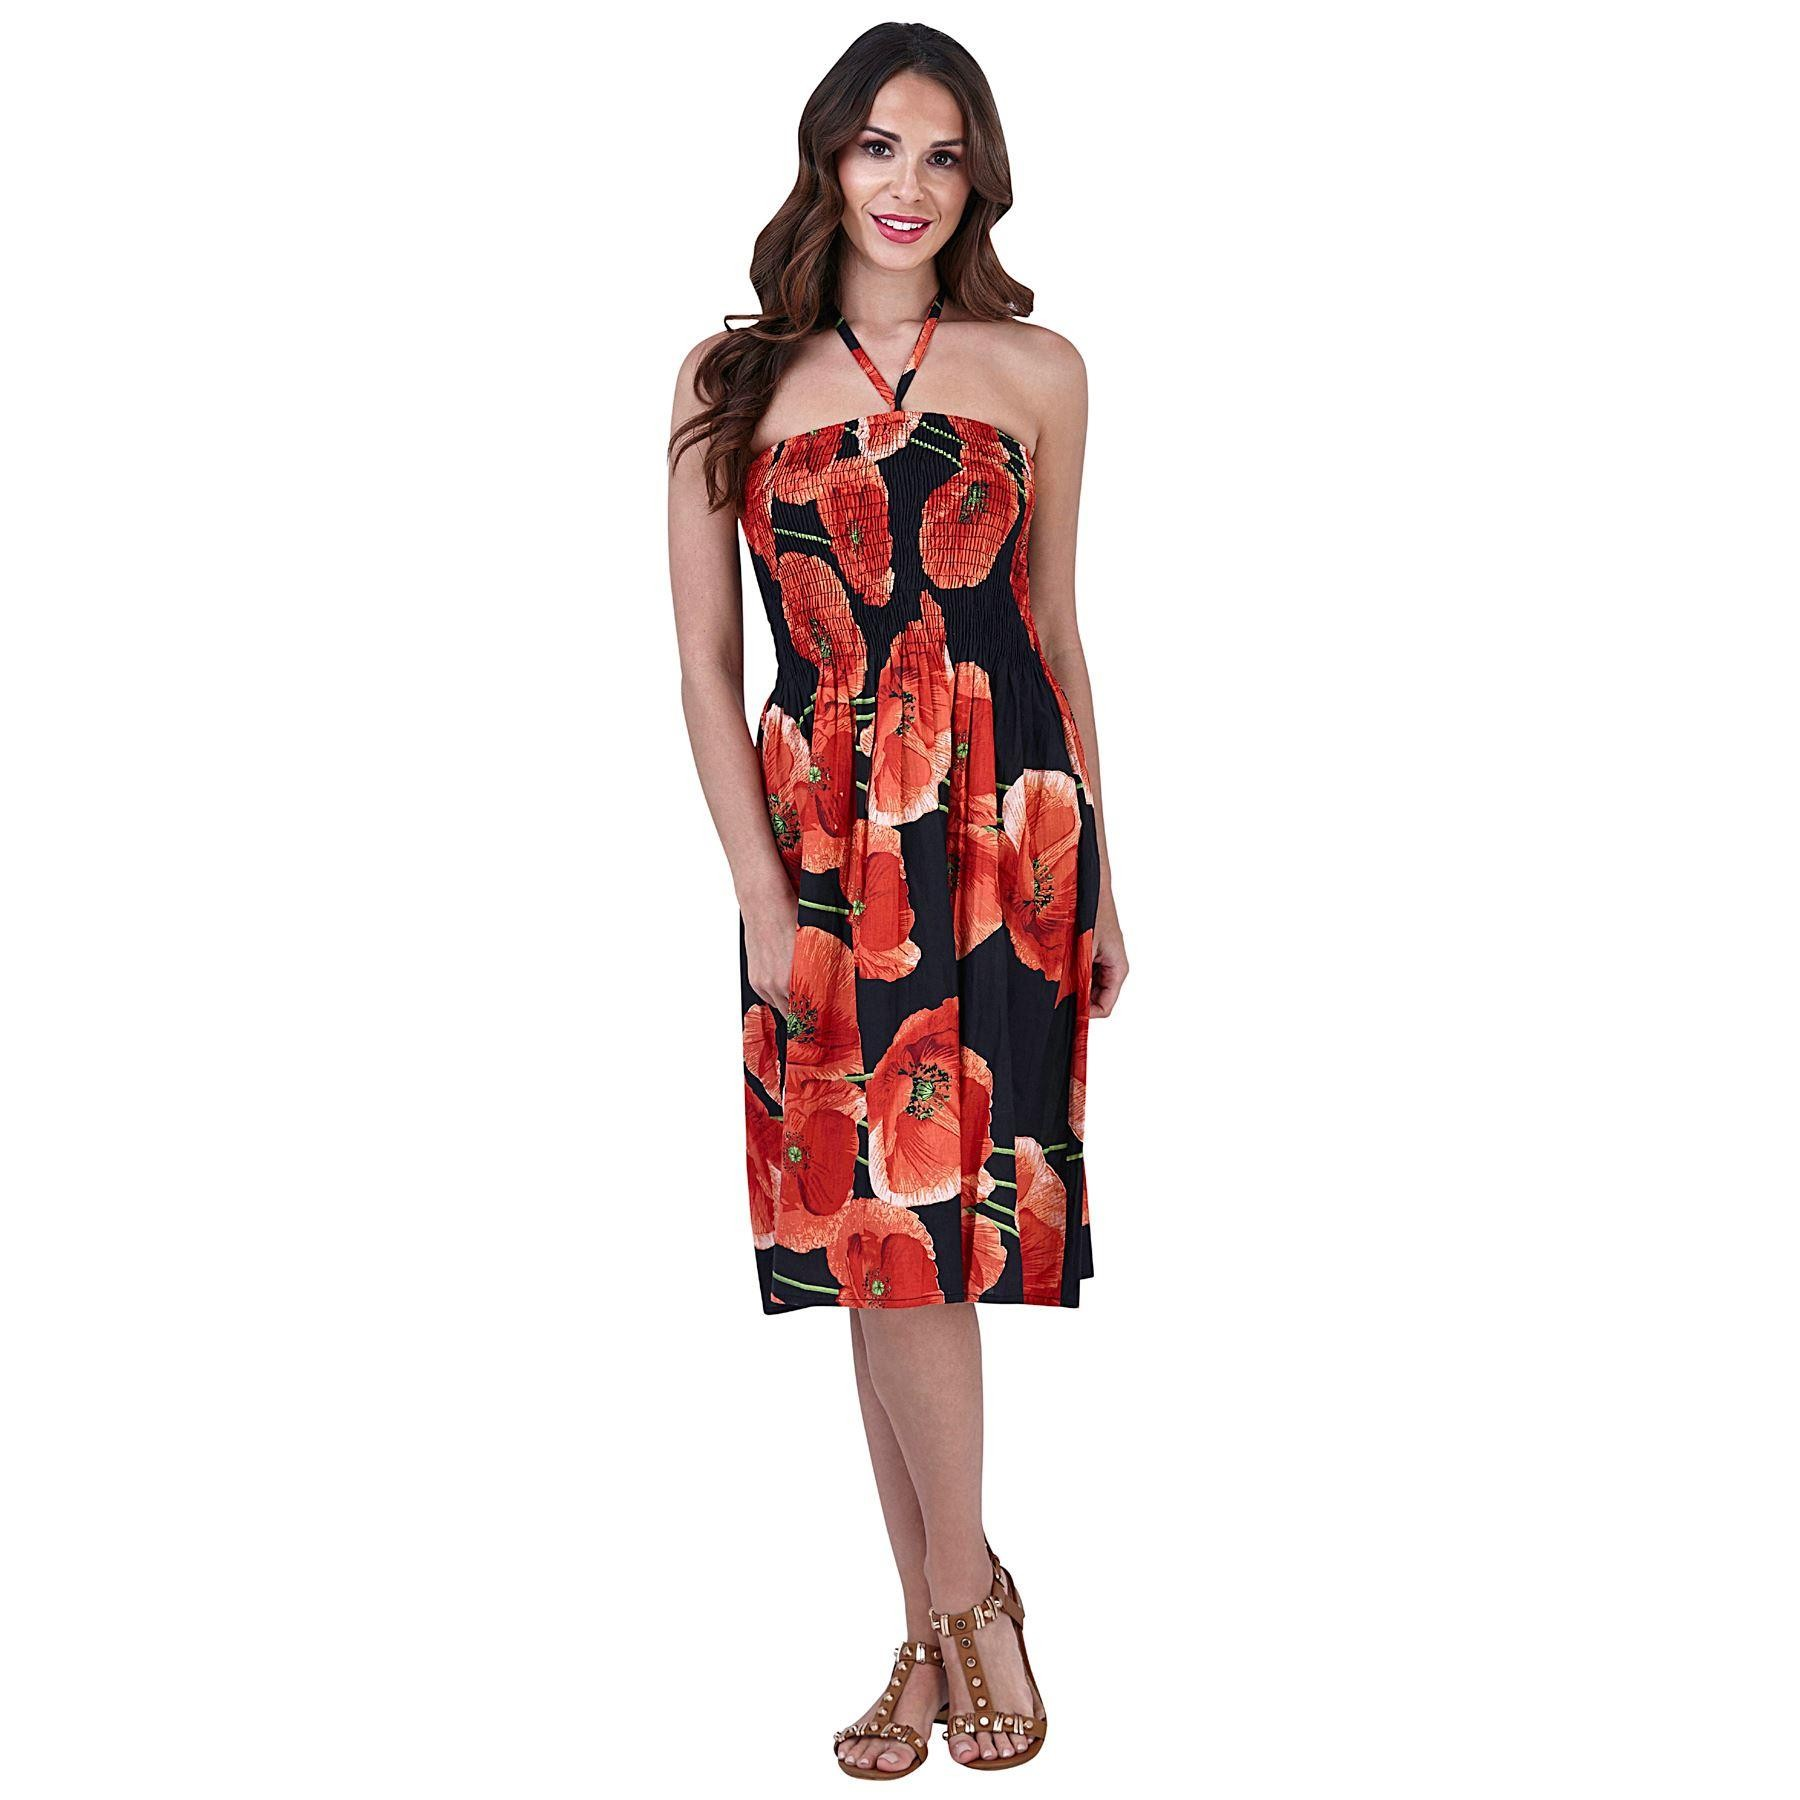 Pistachio Poppy Print 3 in 1 Dress - Red